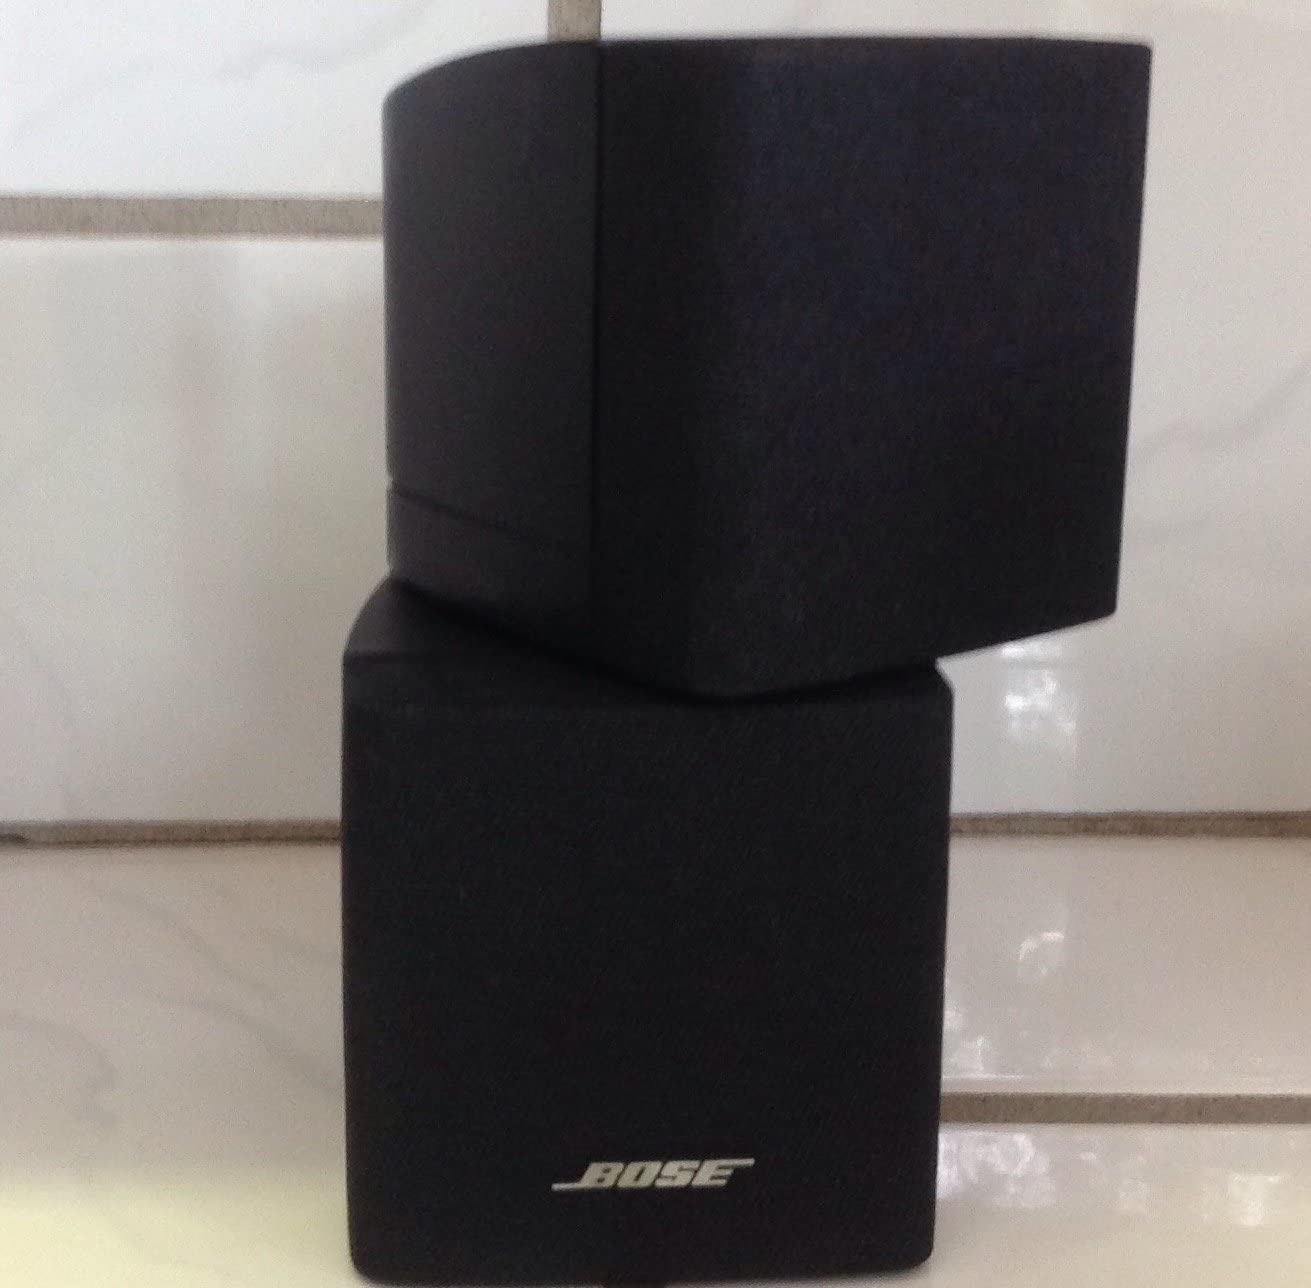 BOSE Double Cube Speaker black 2nd Generation 1ea This Price NOT-New